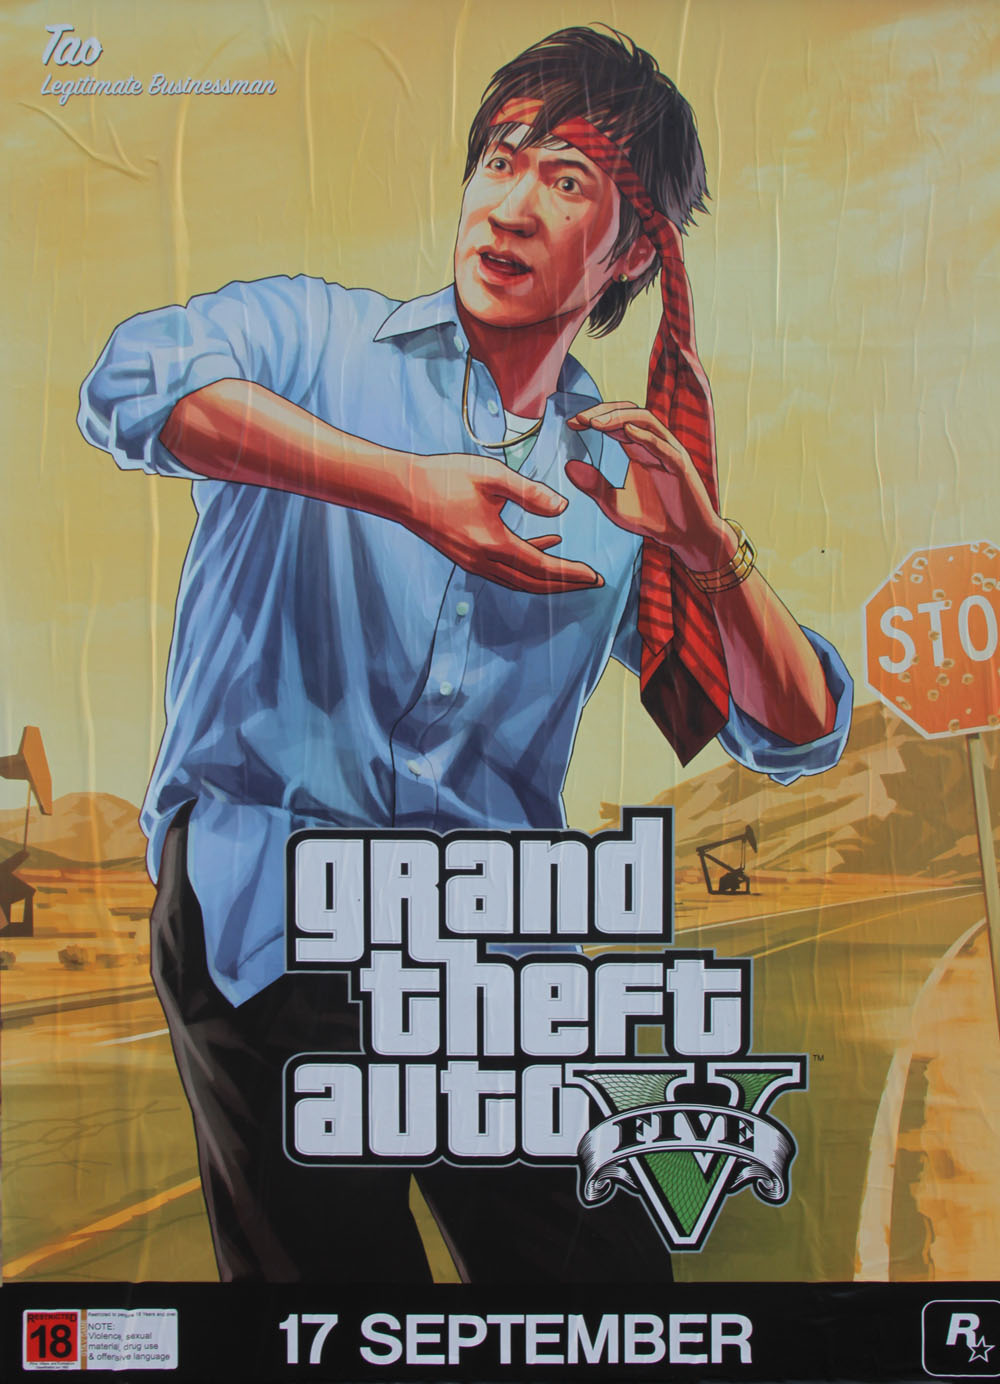 the gta place 5 new gtav character artworks from street posters. Black Bedroom Furniture Sets. Home Design Ideas